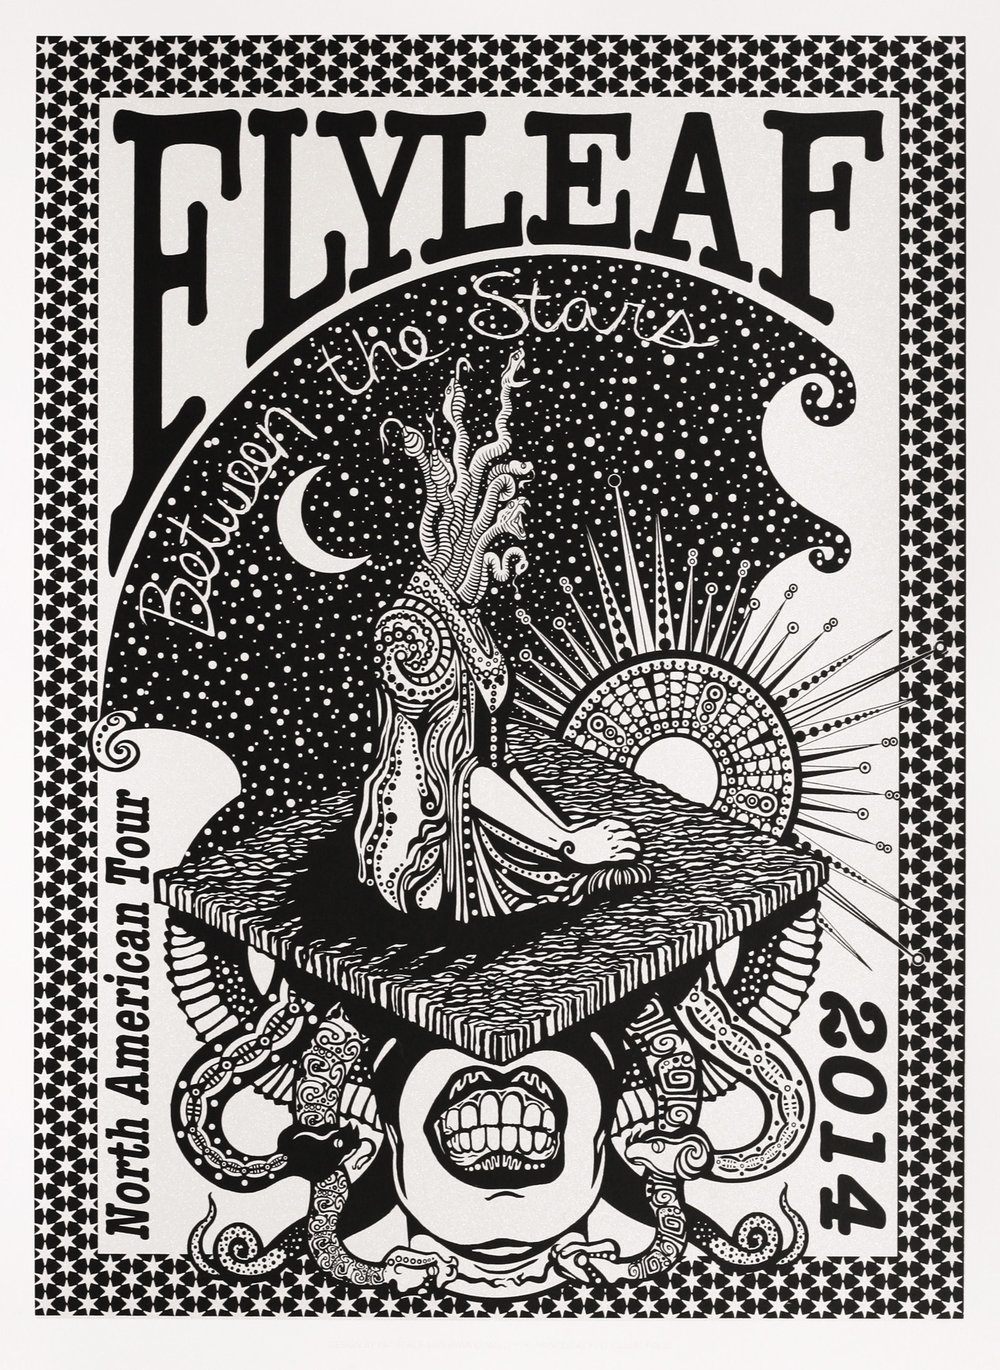 Pat Seals   Flyleaf Tour Poster   screenprint  2014